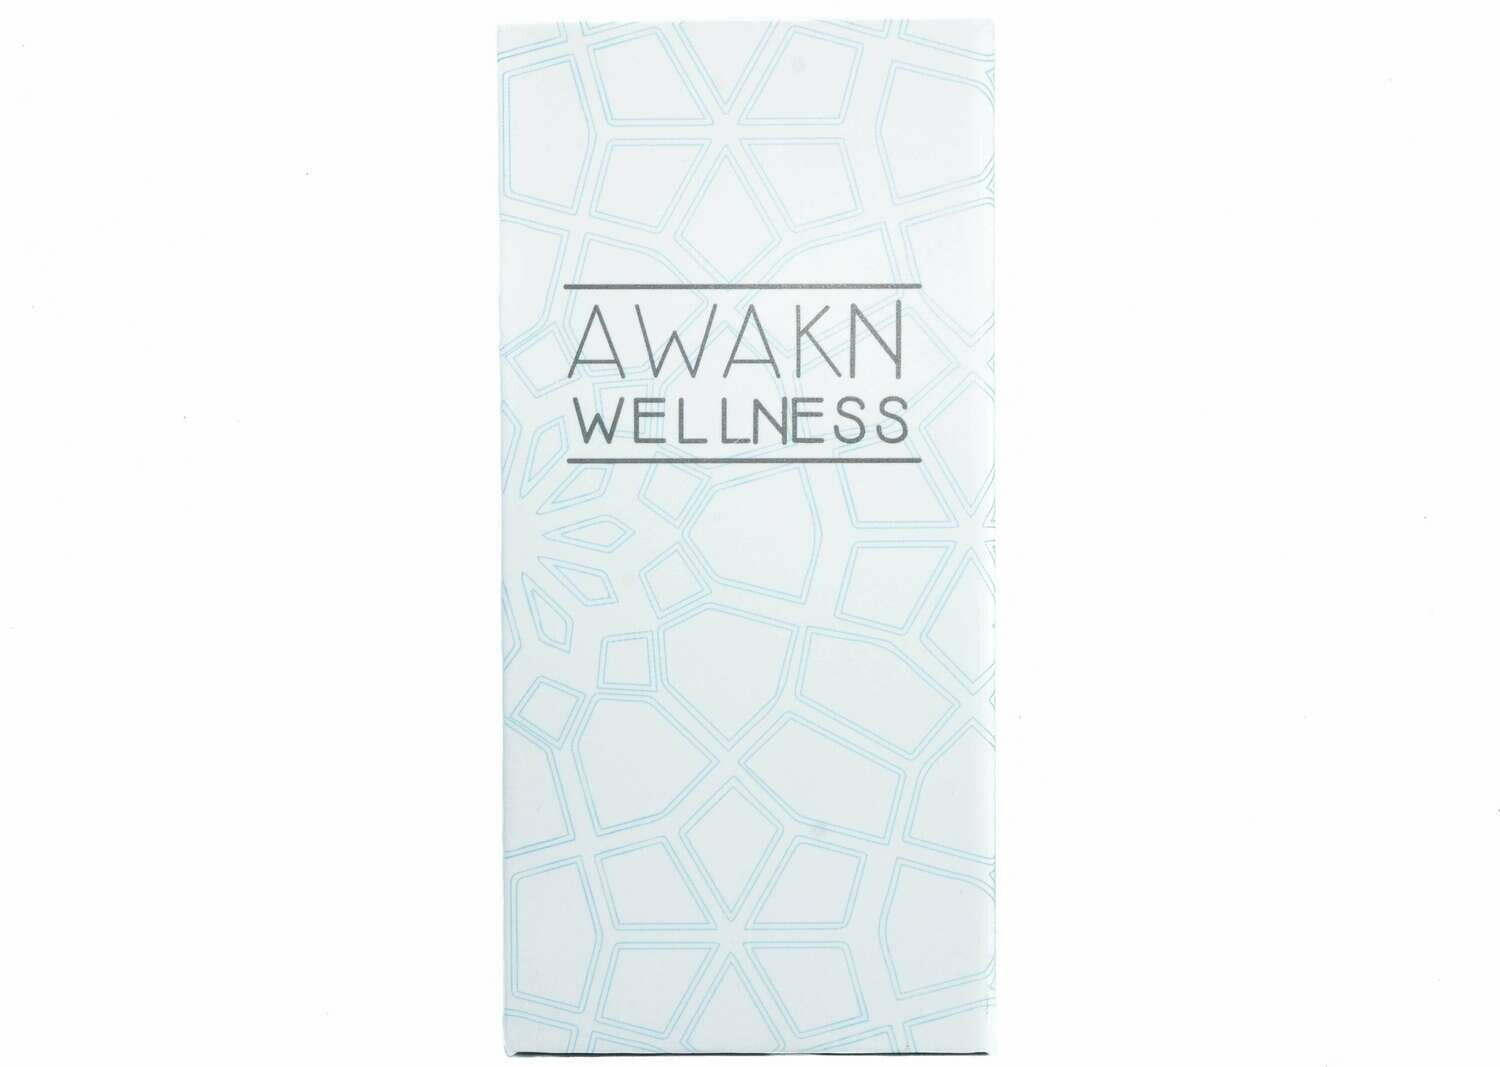 1:1 (Full Spectrum) (Indica) CBD Vape Kit by Awakn Wellness